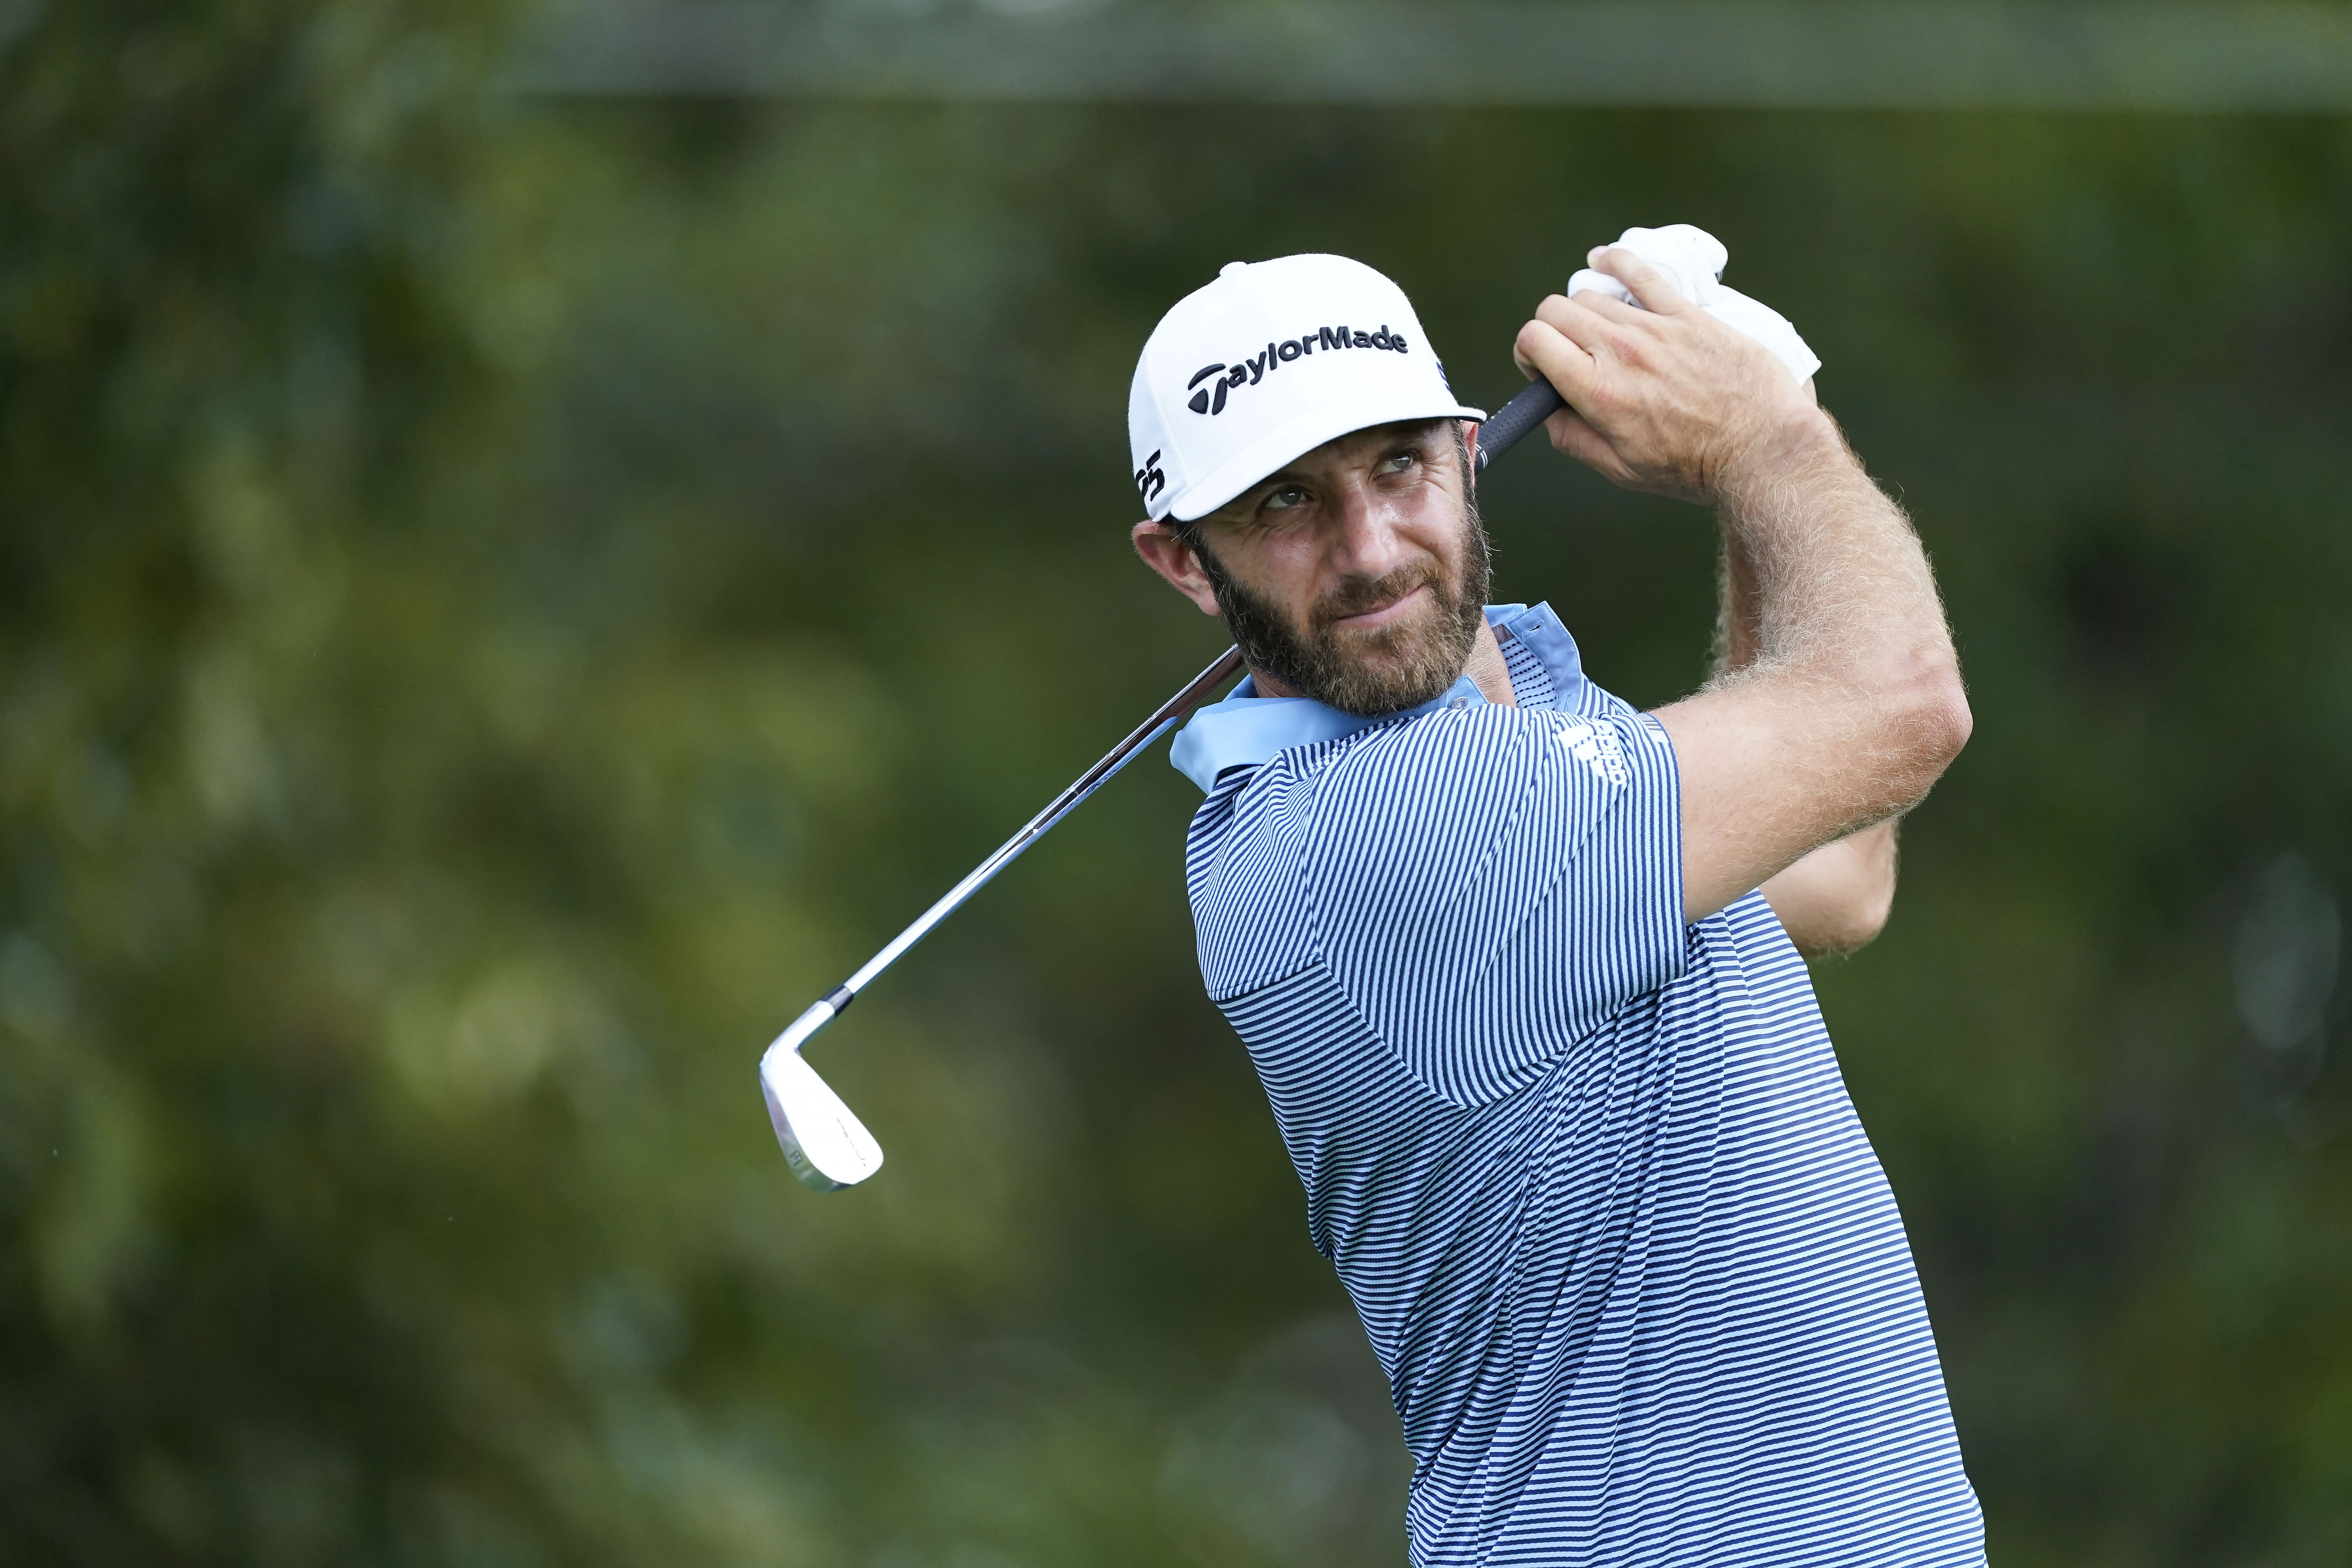 Dustin Johnson hits on the third tee during the first round of the Tour Championship golf tournament at East Lake Golf Club in Atlanta, Friday, Sept. 4, 2020. (AP Photo/John Bazemore)